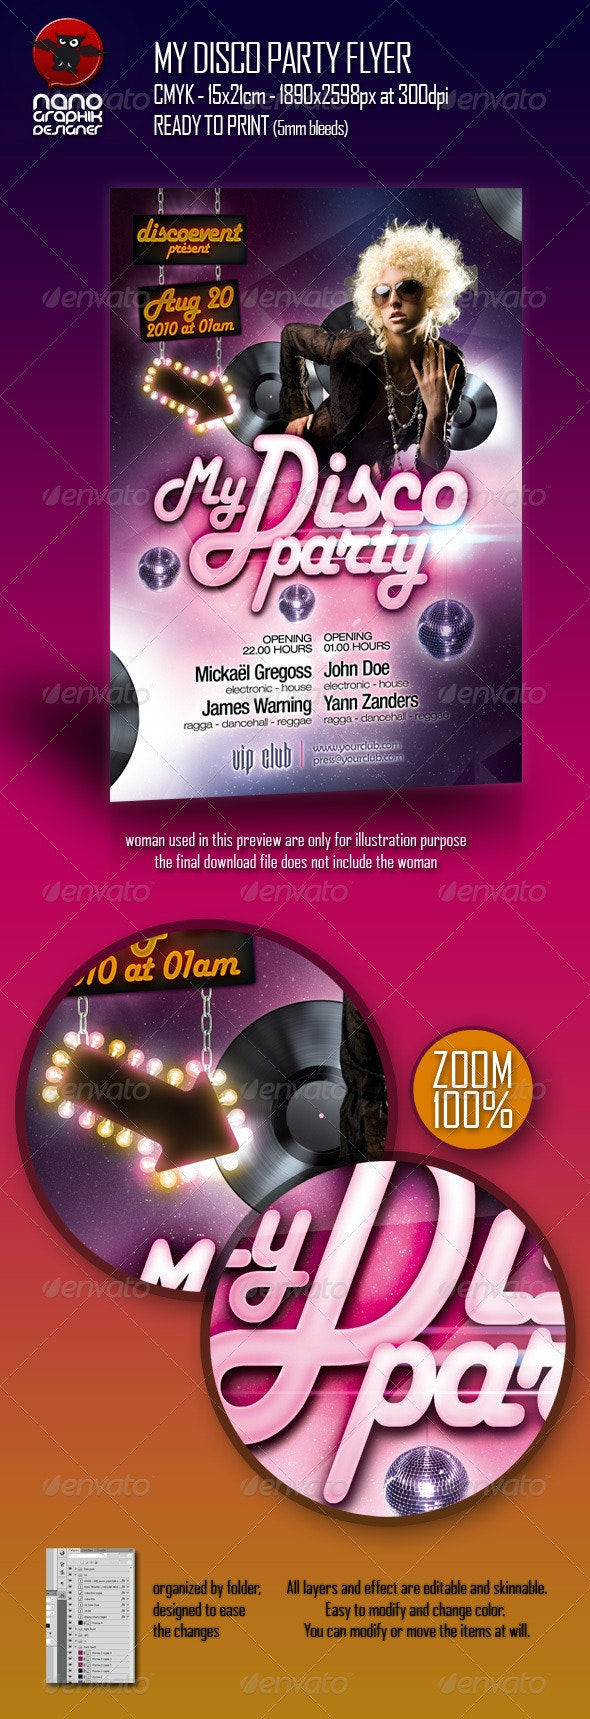 My Disco Party Flyer - Clubs & Parties Events